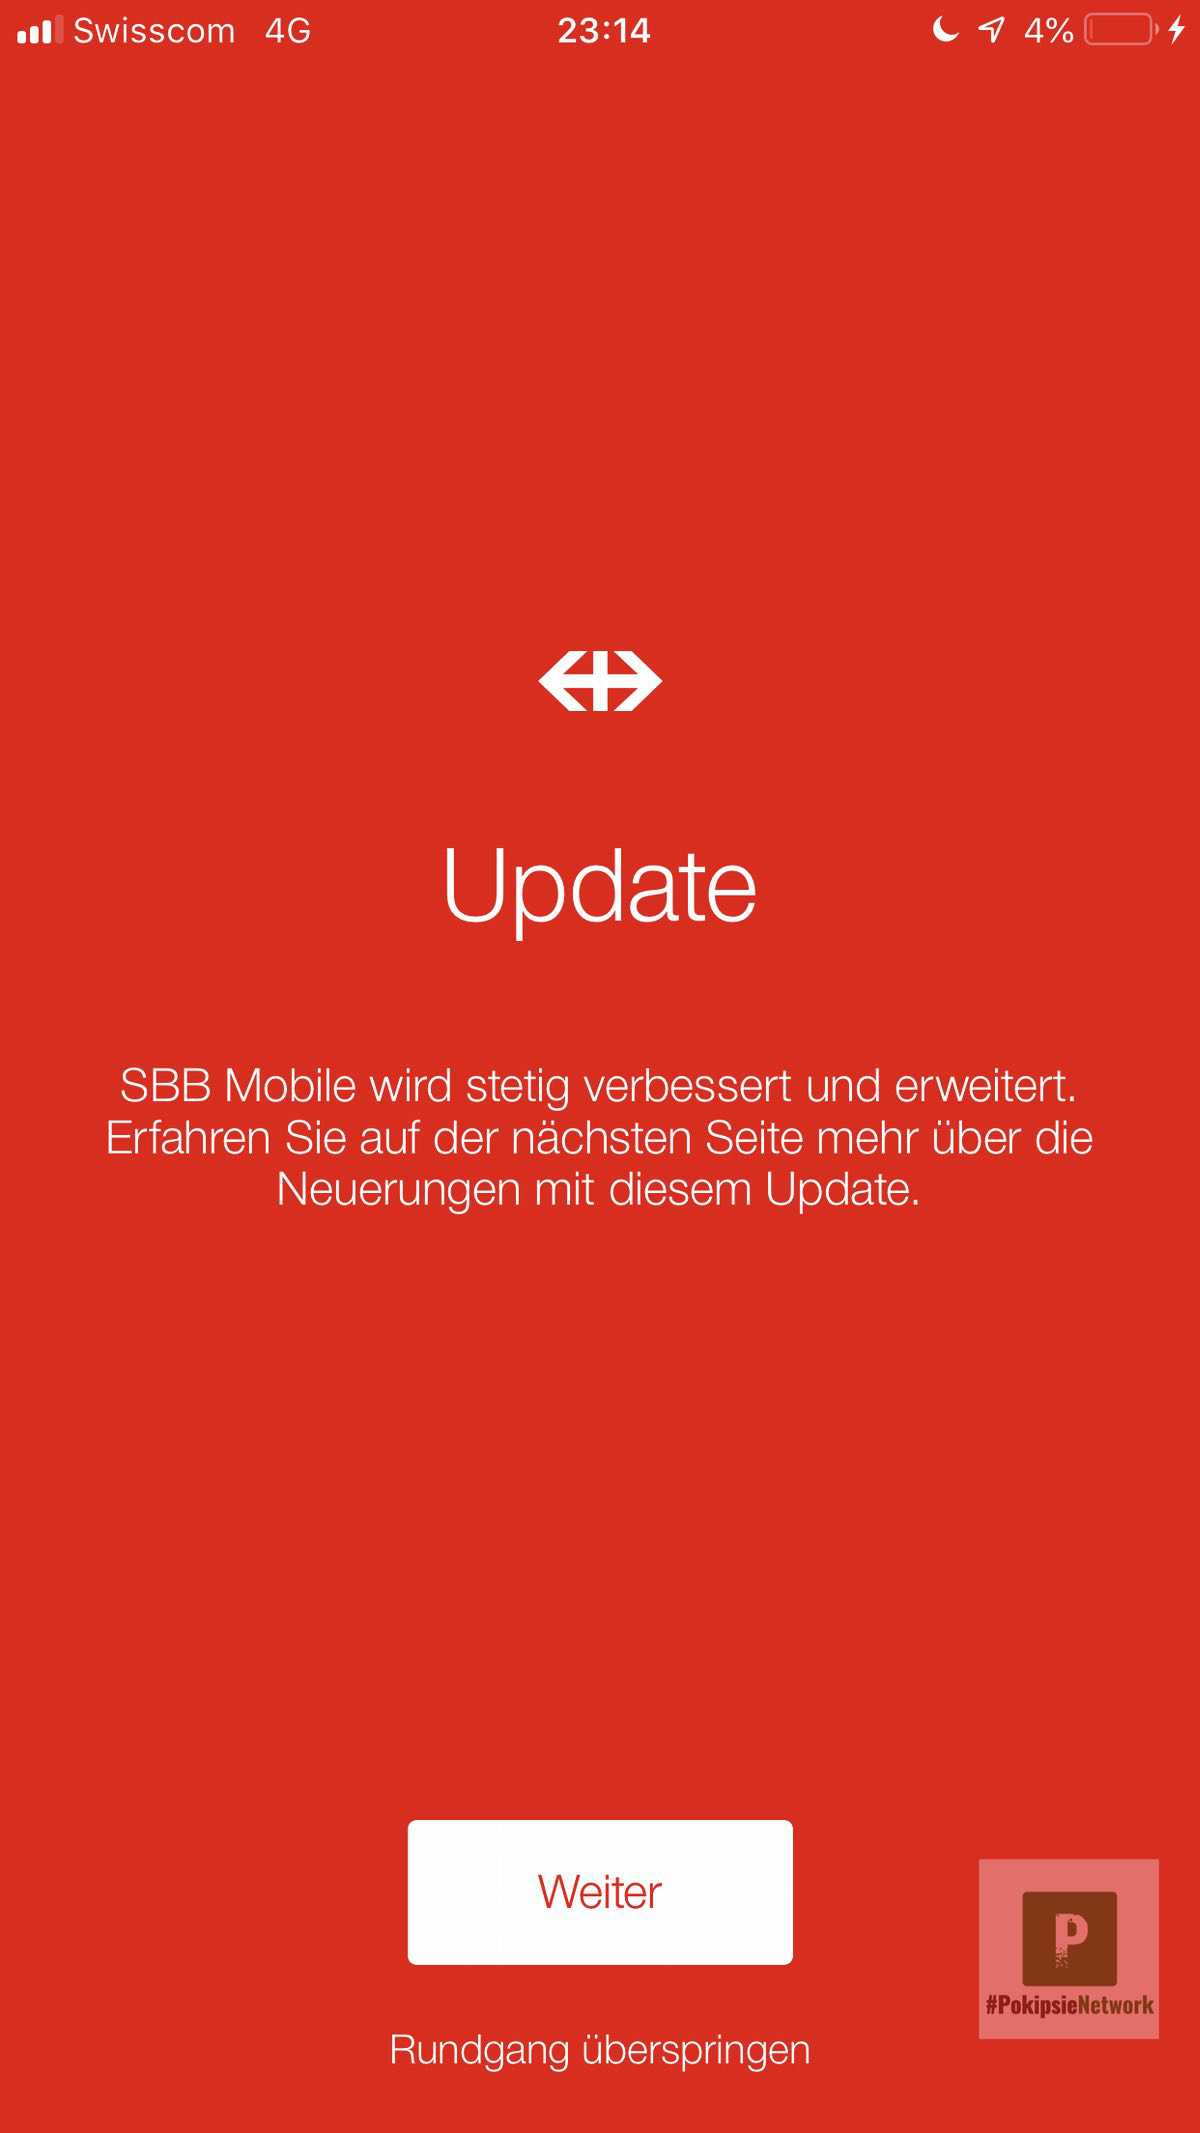 SBB Preview mit Update von FAIRTIQ